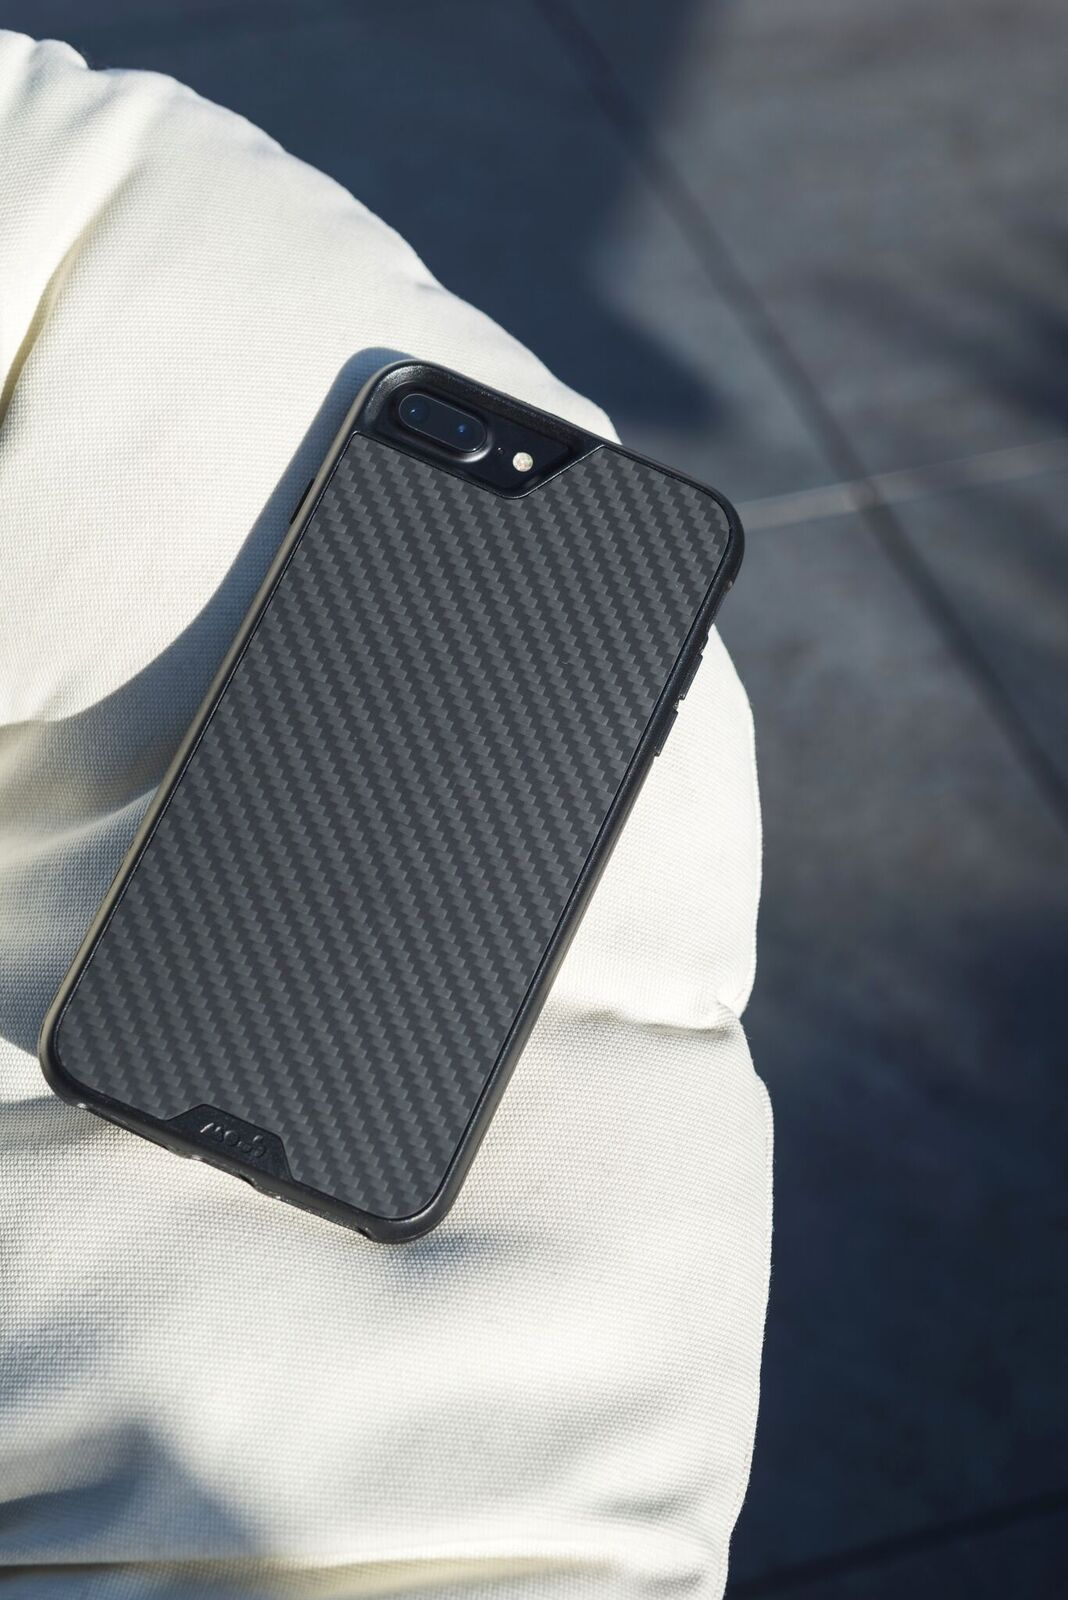 buy online aacb2 c44a7 Mous Carbon Fibre iPhone 6/7/8+ Case - Mous iPhone Cases - Mous ...